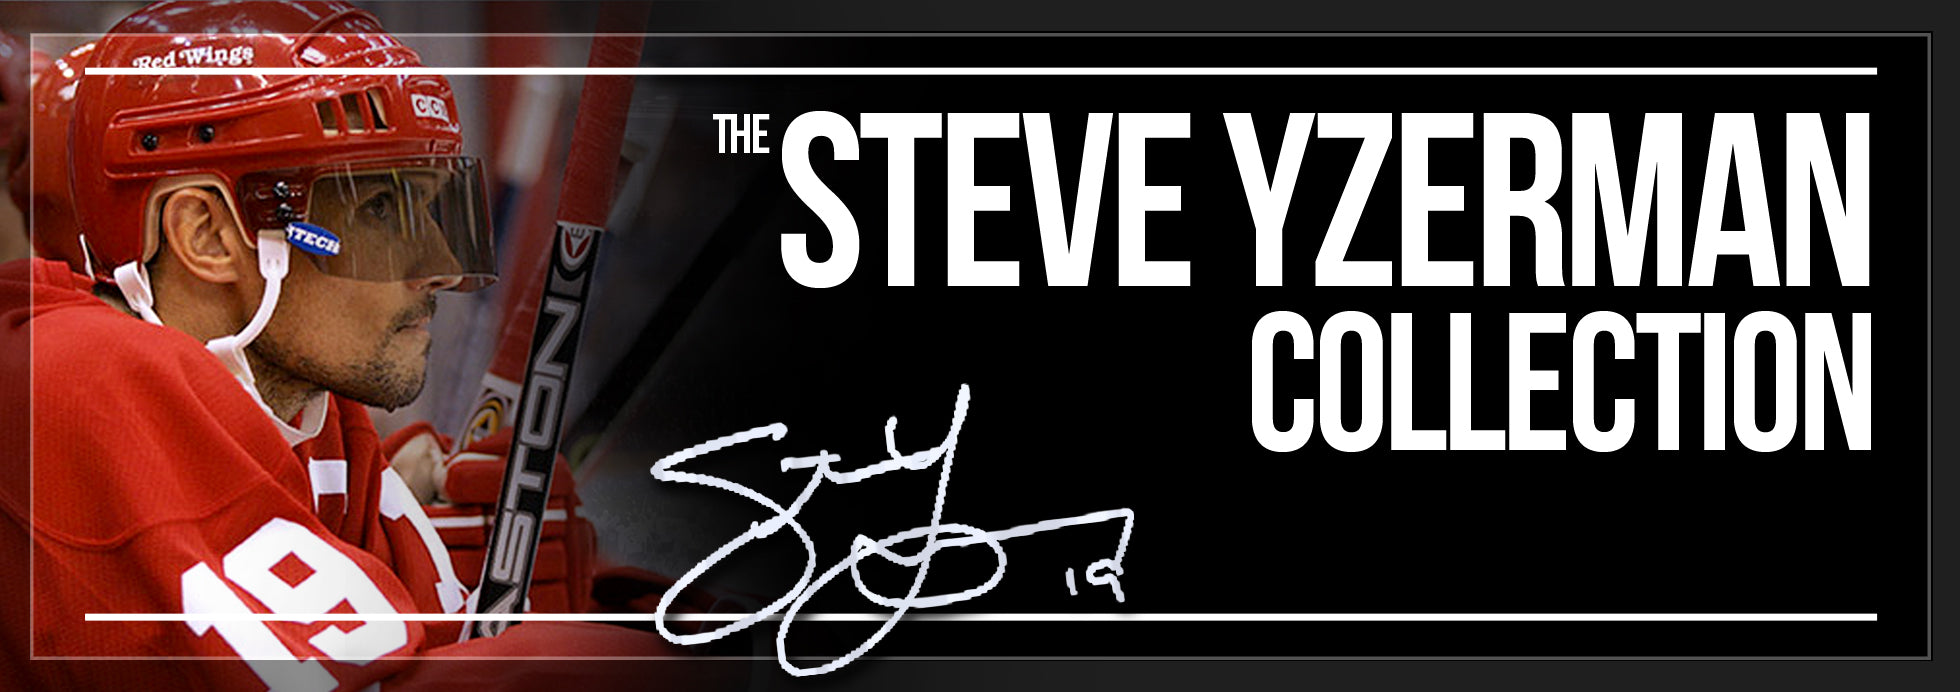 Steve Yzerman Collection Banner